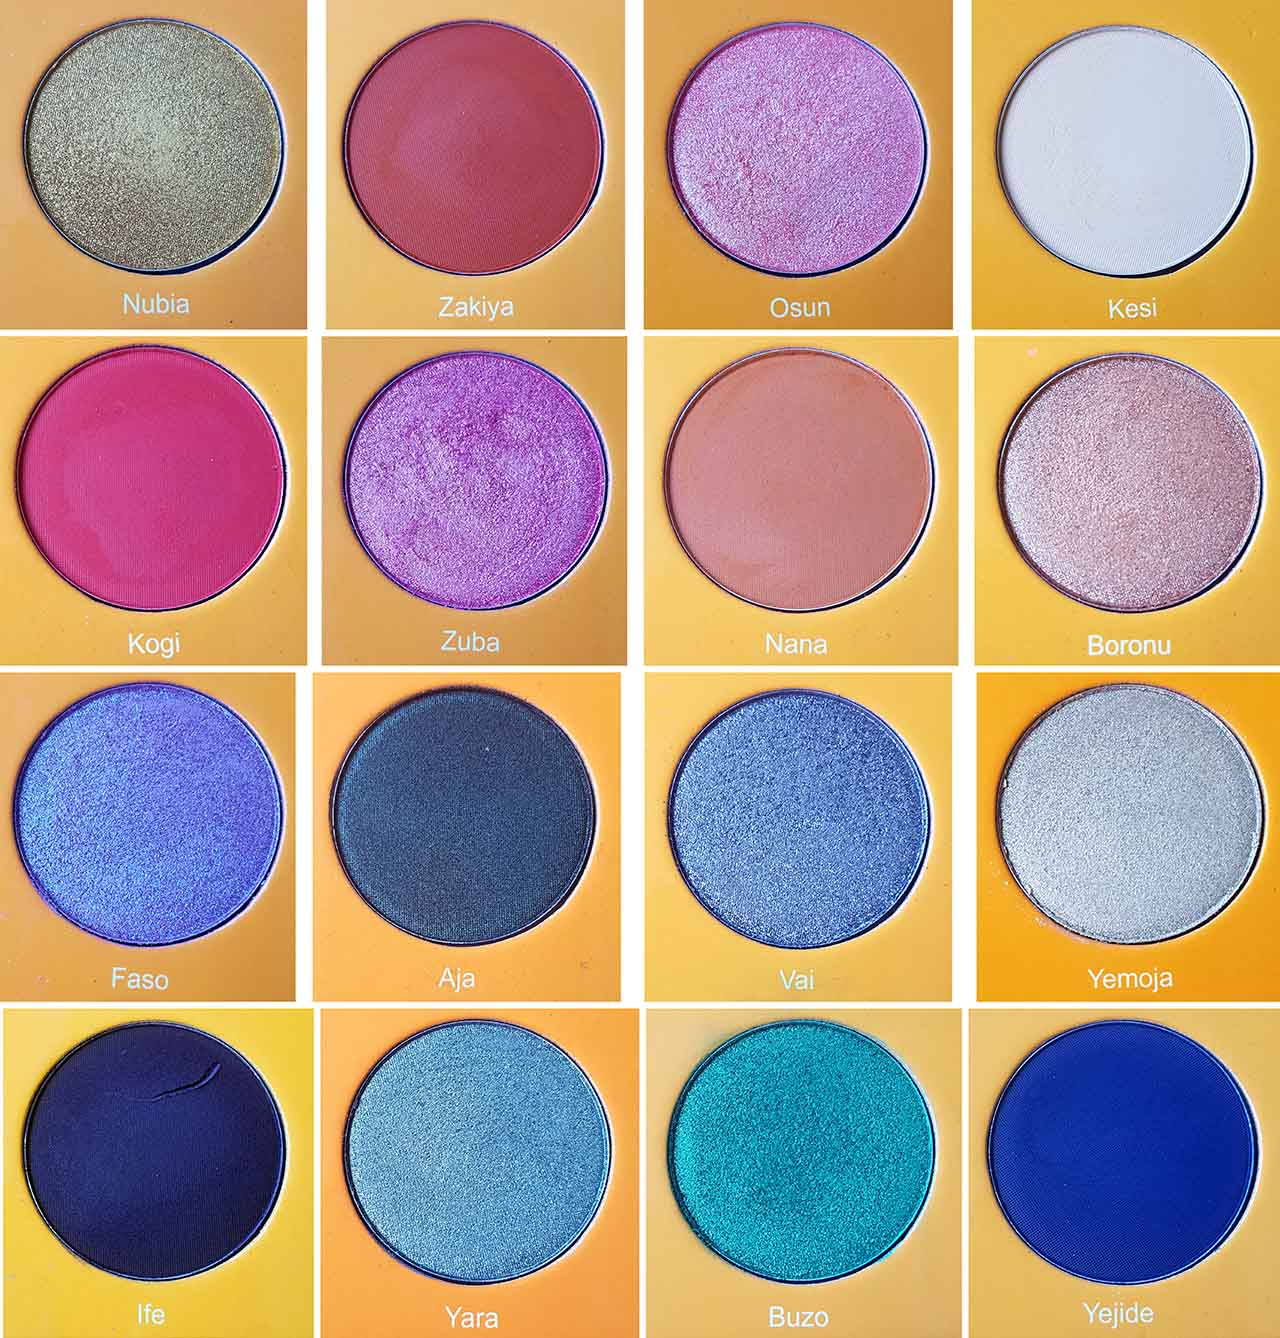 Juvia's Place Magic Palette: And this is a close up of each shade with its name. There are 6 matte shades - Zakiya, Kesi, Nana, Kogi, Lfe and Yejide – and 10 shimmer shades – Nubia, Osun, Zuba, Boronu, Faso, Aja, Vai, Yemoja, Yara and Buzo